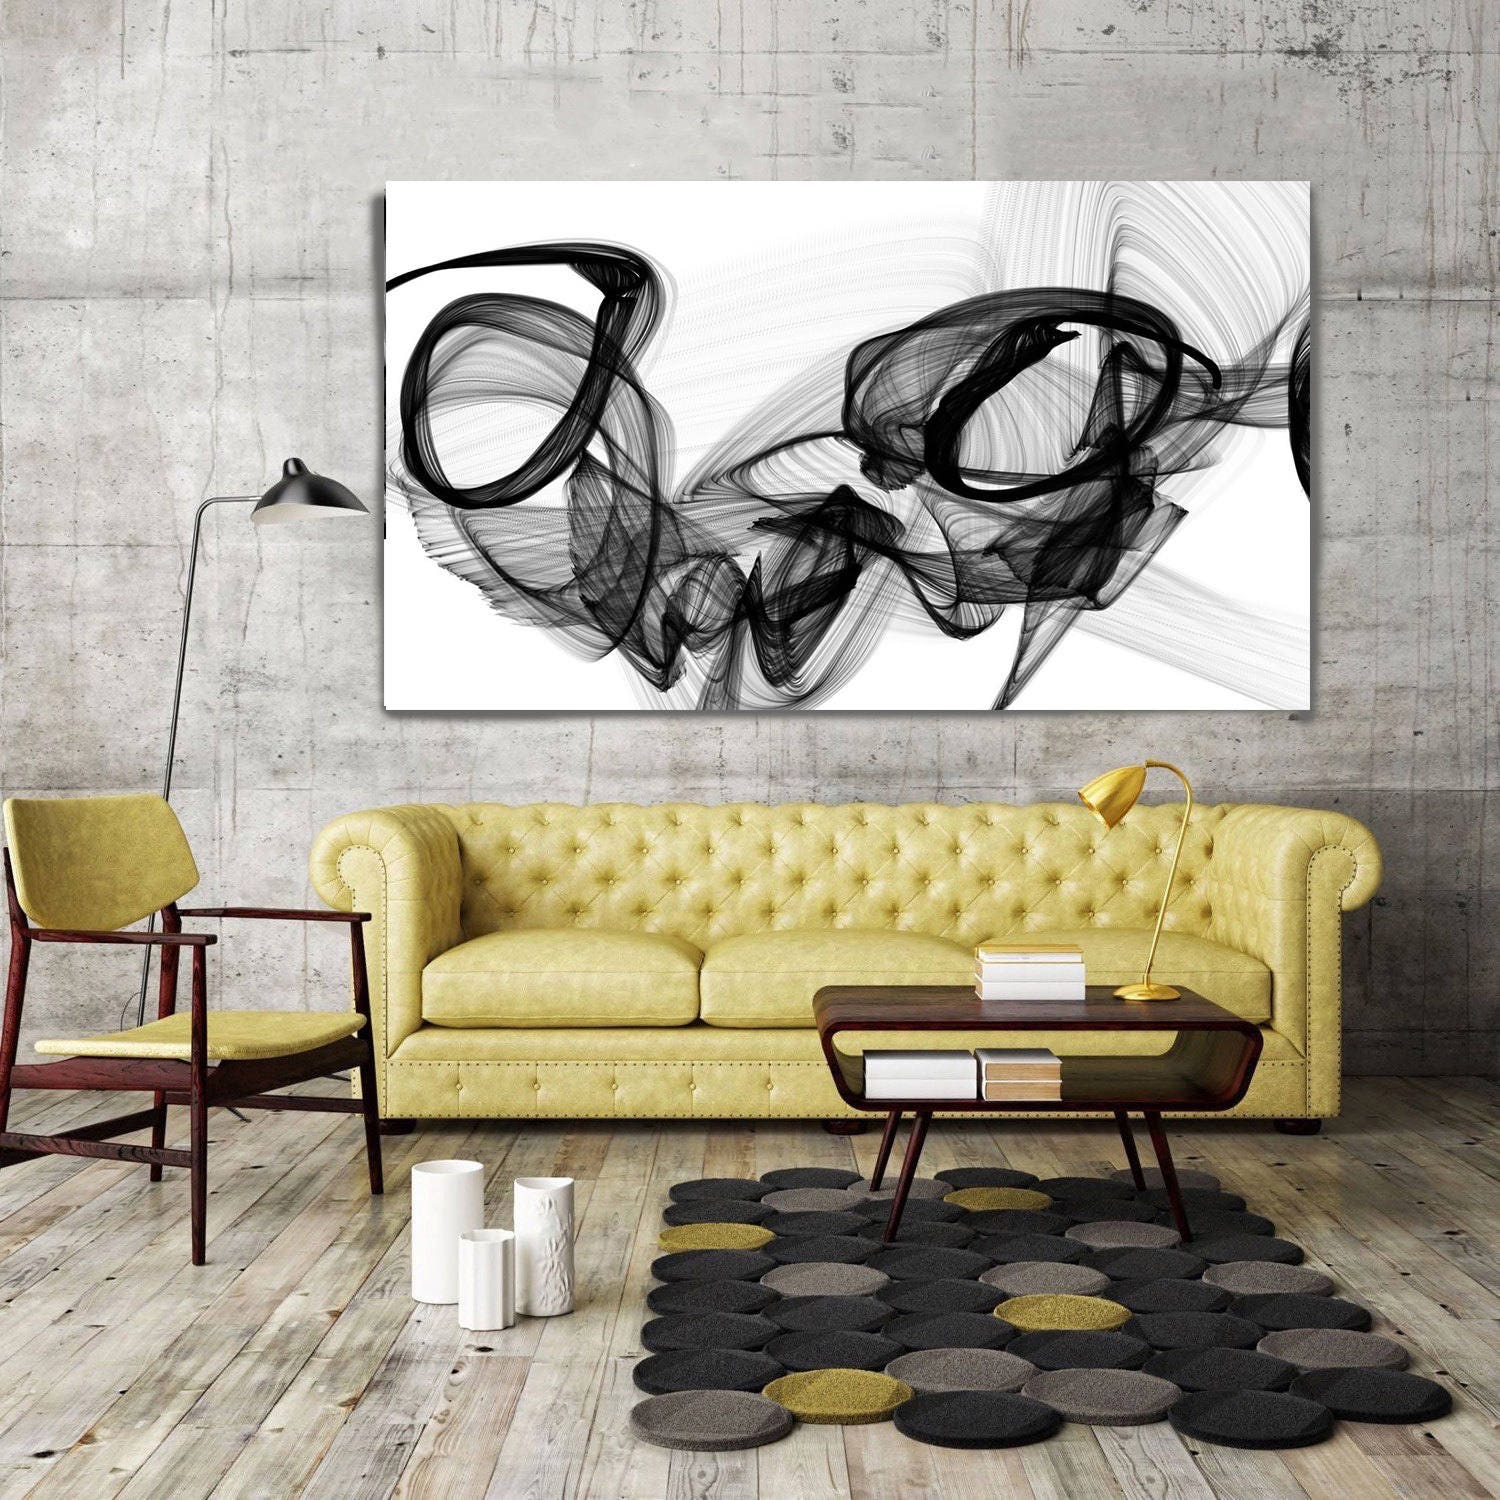 The Marriage, Black and White Contemporary Abstract Canvas Art Print ...